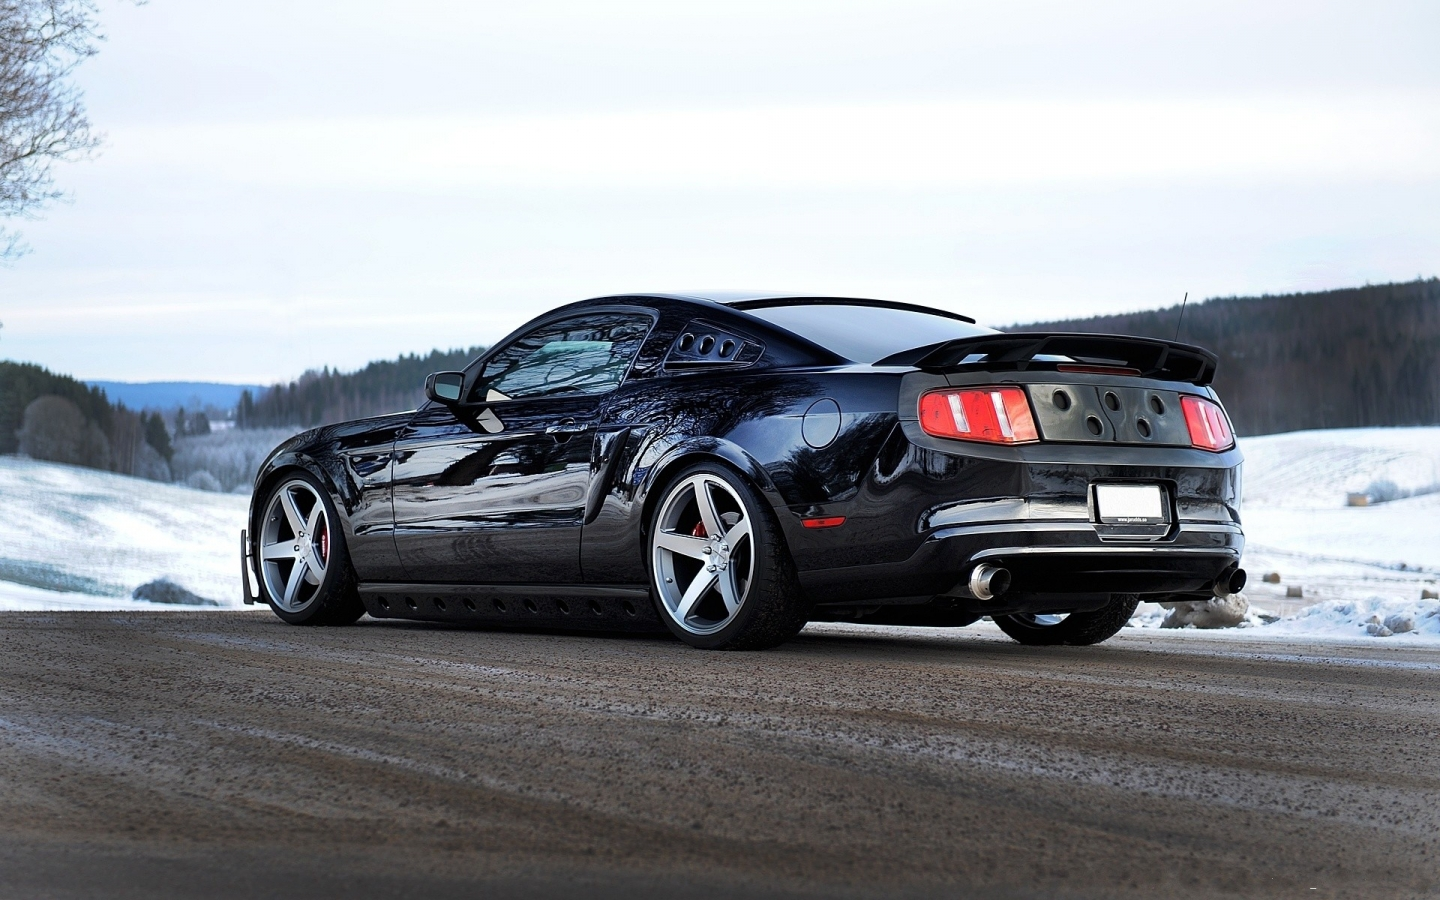 Ford Mustang GT 2013 - 1440x900